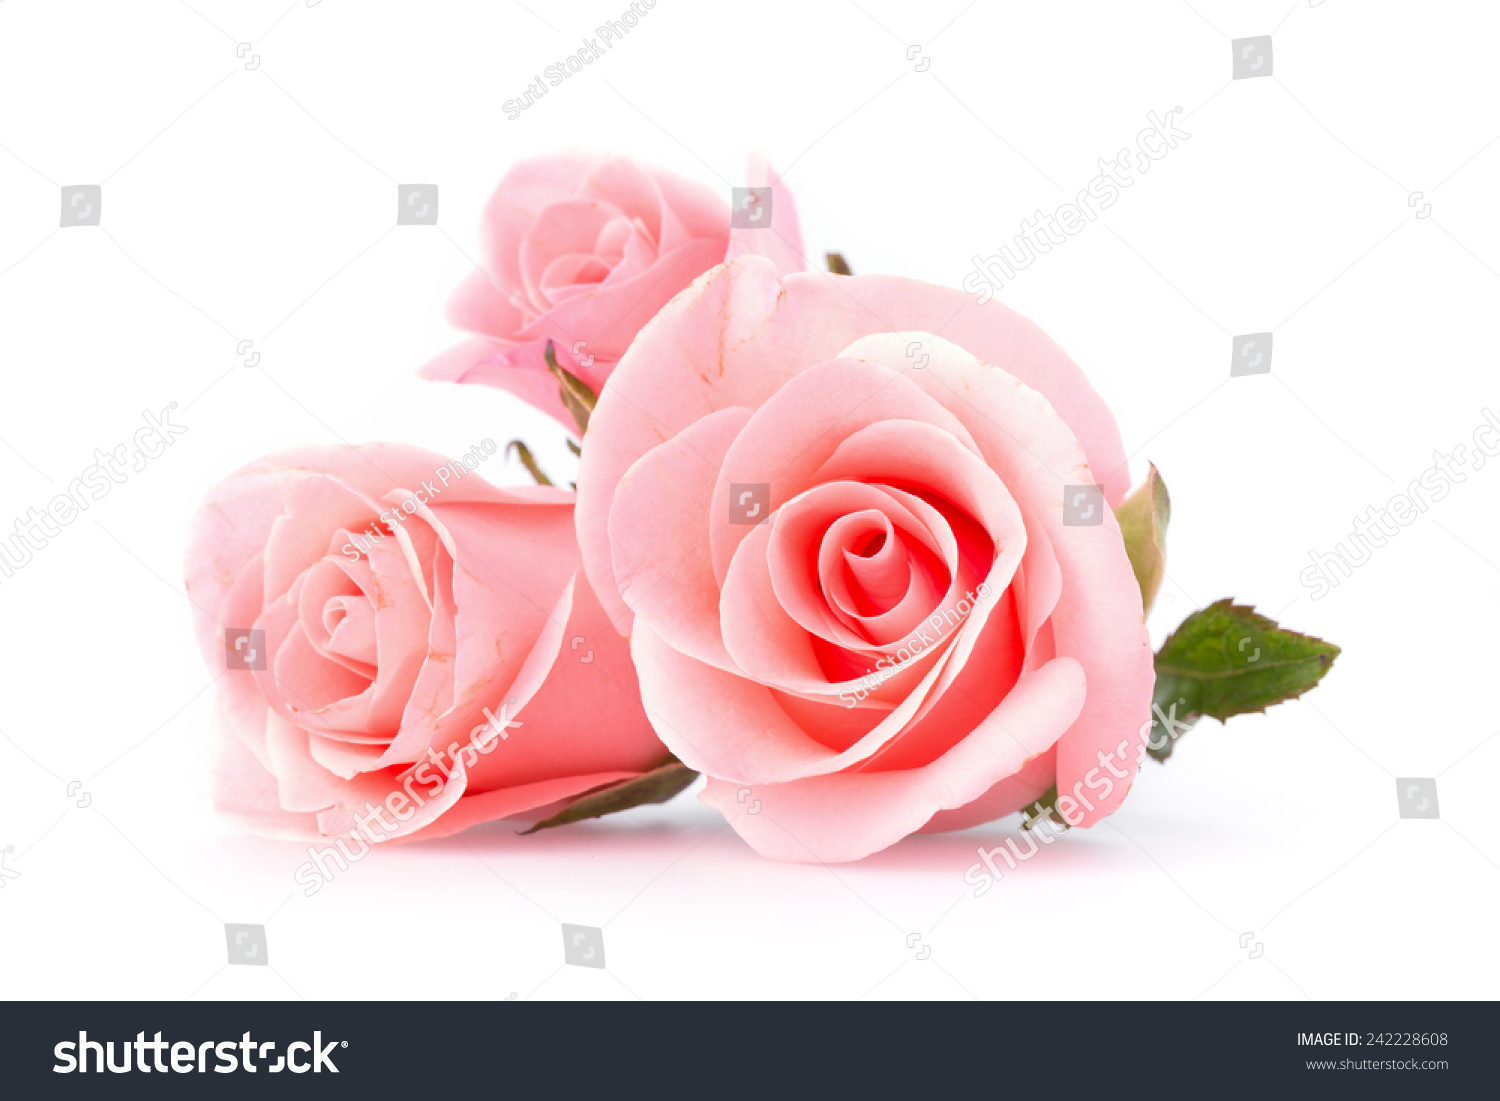 pink rose flower on white background imagen de archivo